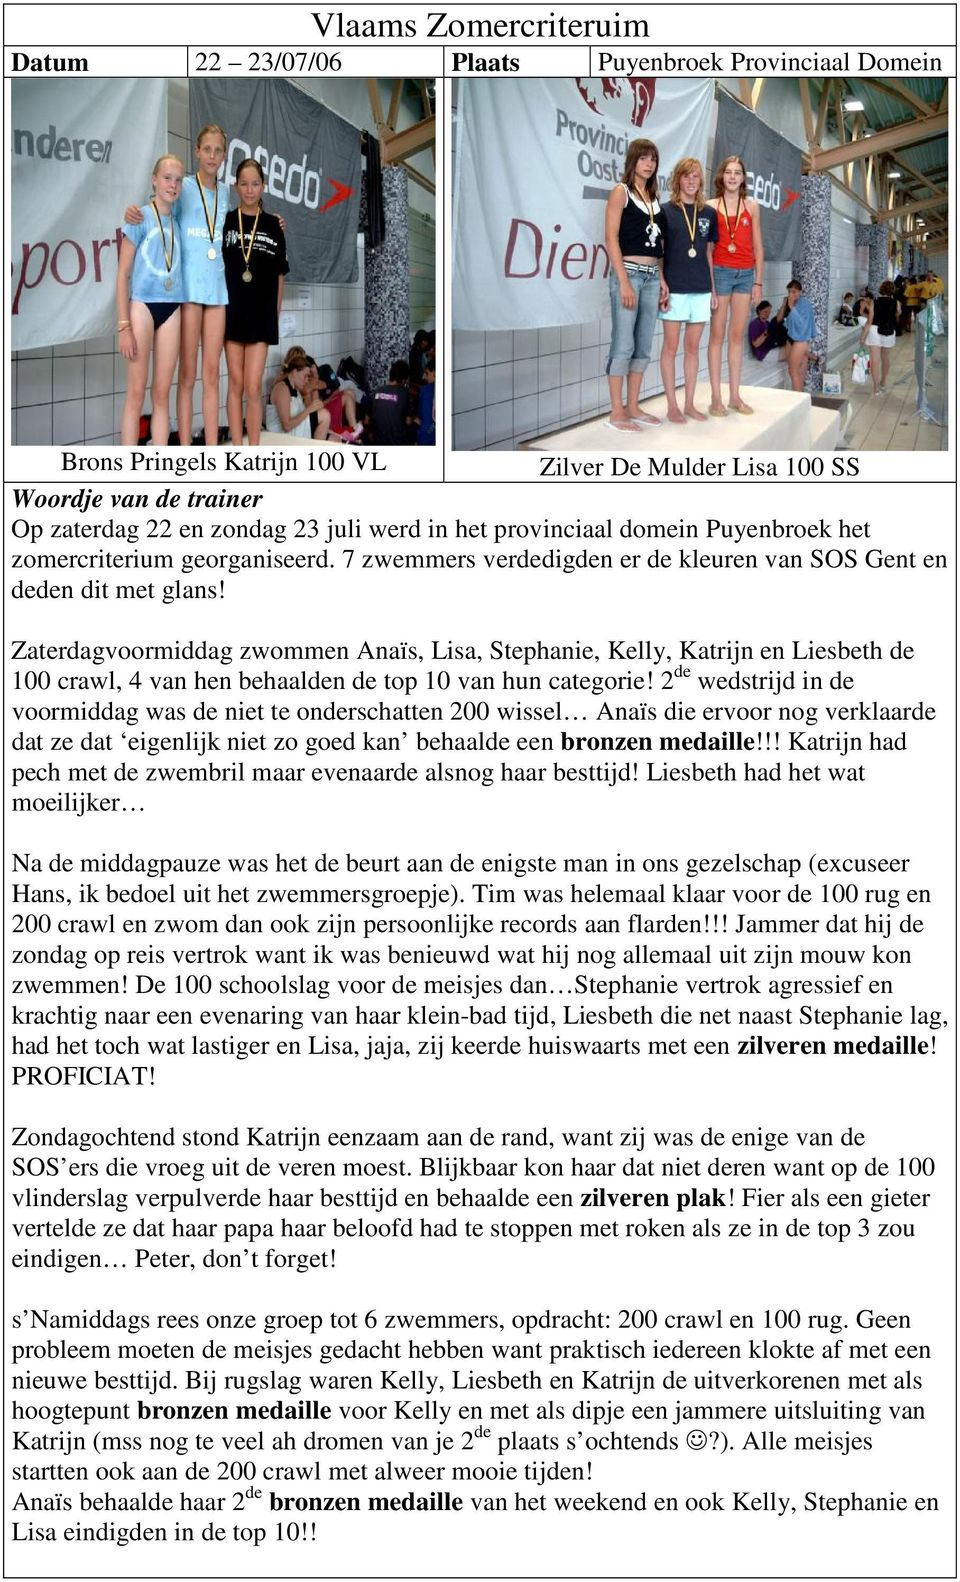 Zaterdagvoormiddag zwommen Anaïs, Lisa, Stephanie, Kelly, Katrijn en Liesbeth de 100 crawl, 4 van hen behaalden de top 10 van hun categorie!